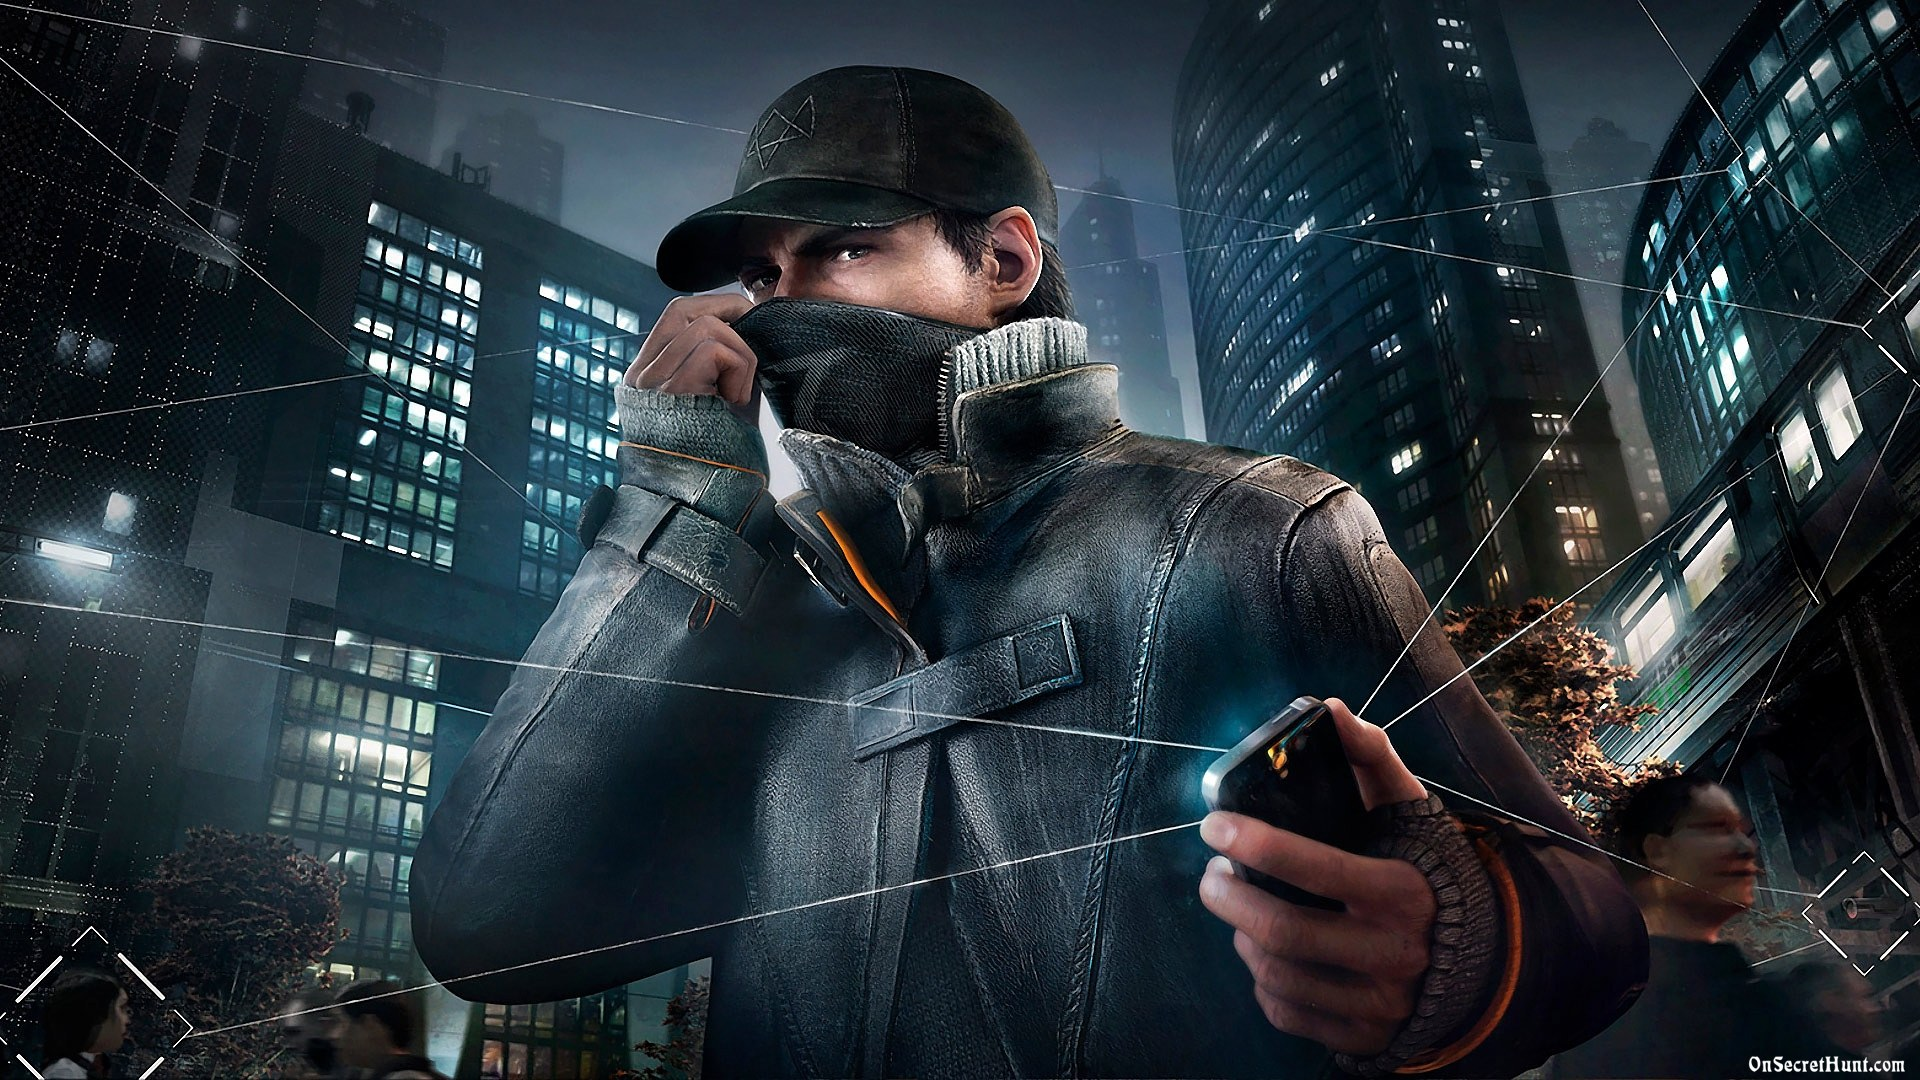 Watch Dogs Game Wallpaper HD